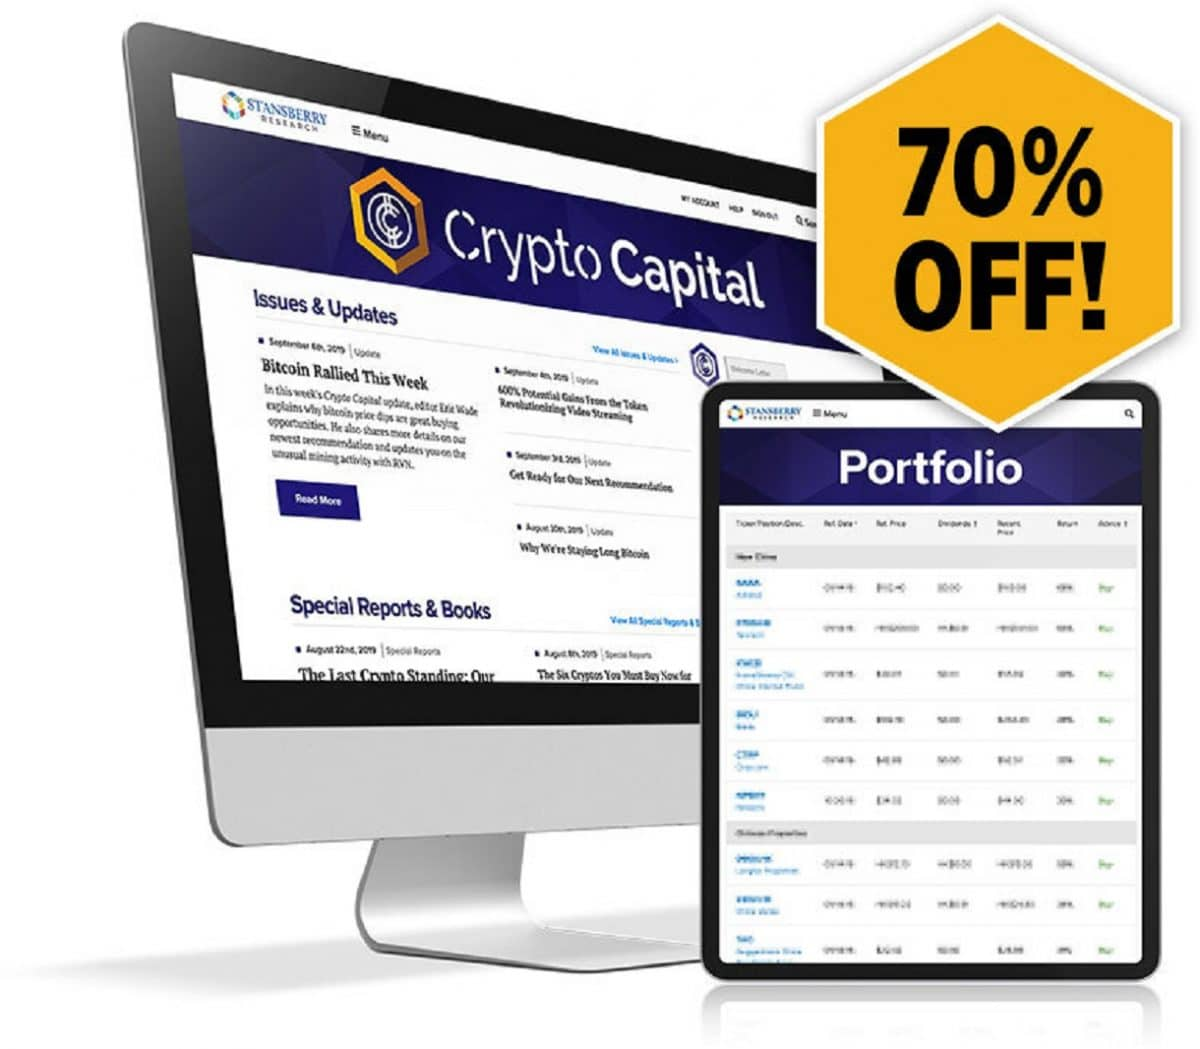 Eric Wade's Crypto Capital Review: All Your Questions Answered